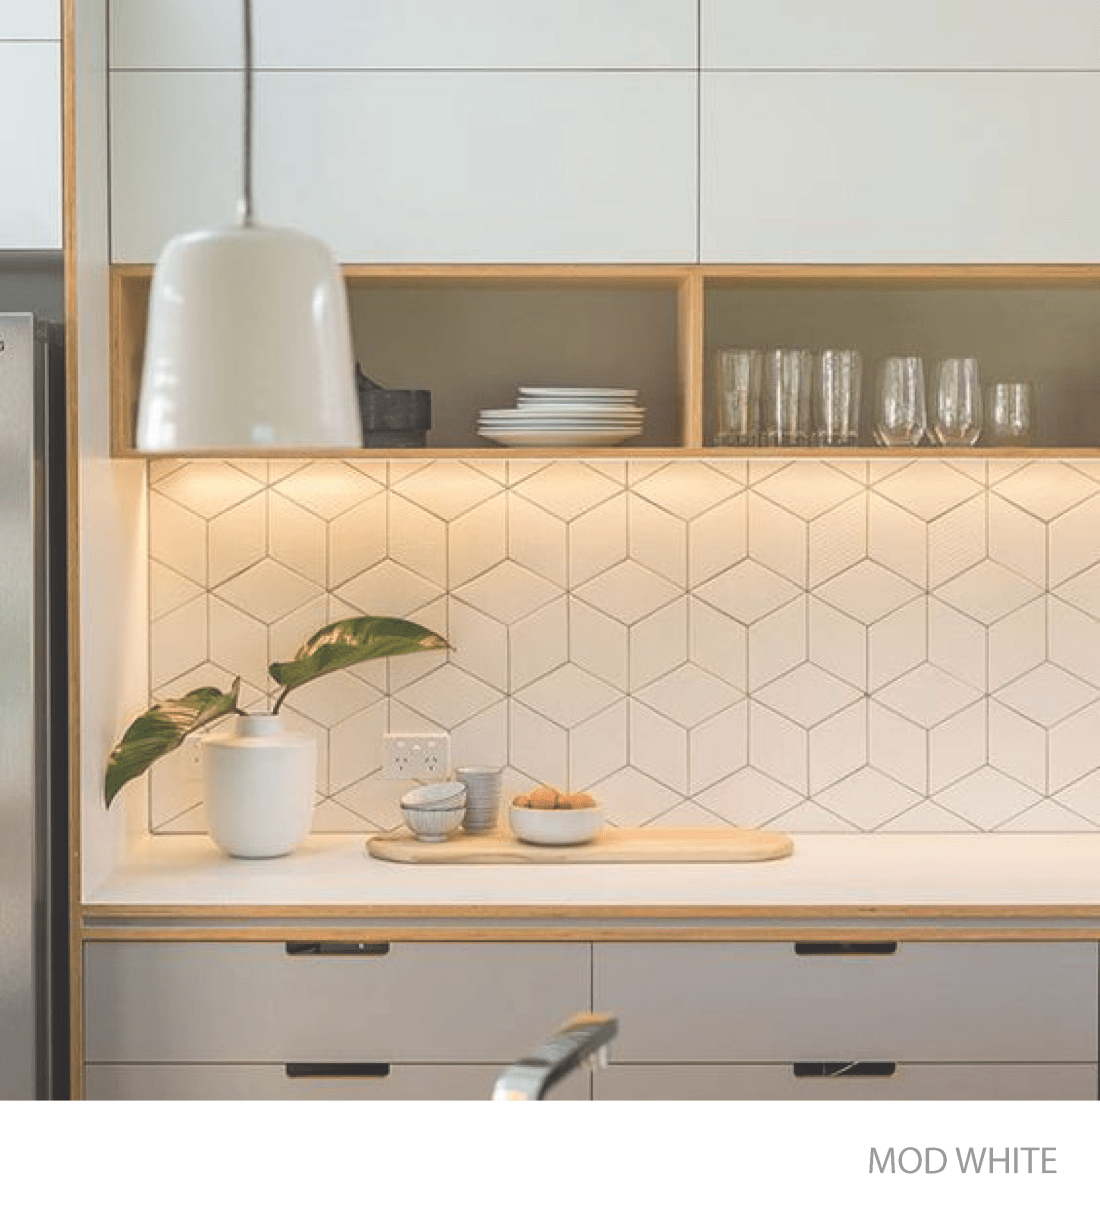 Interior Design Kitchen - Modern White Tile